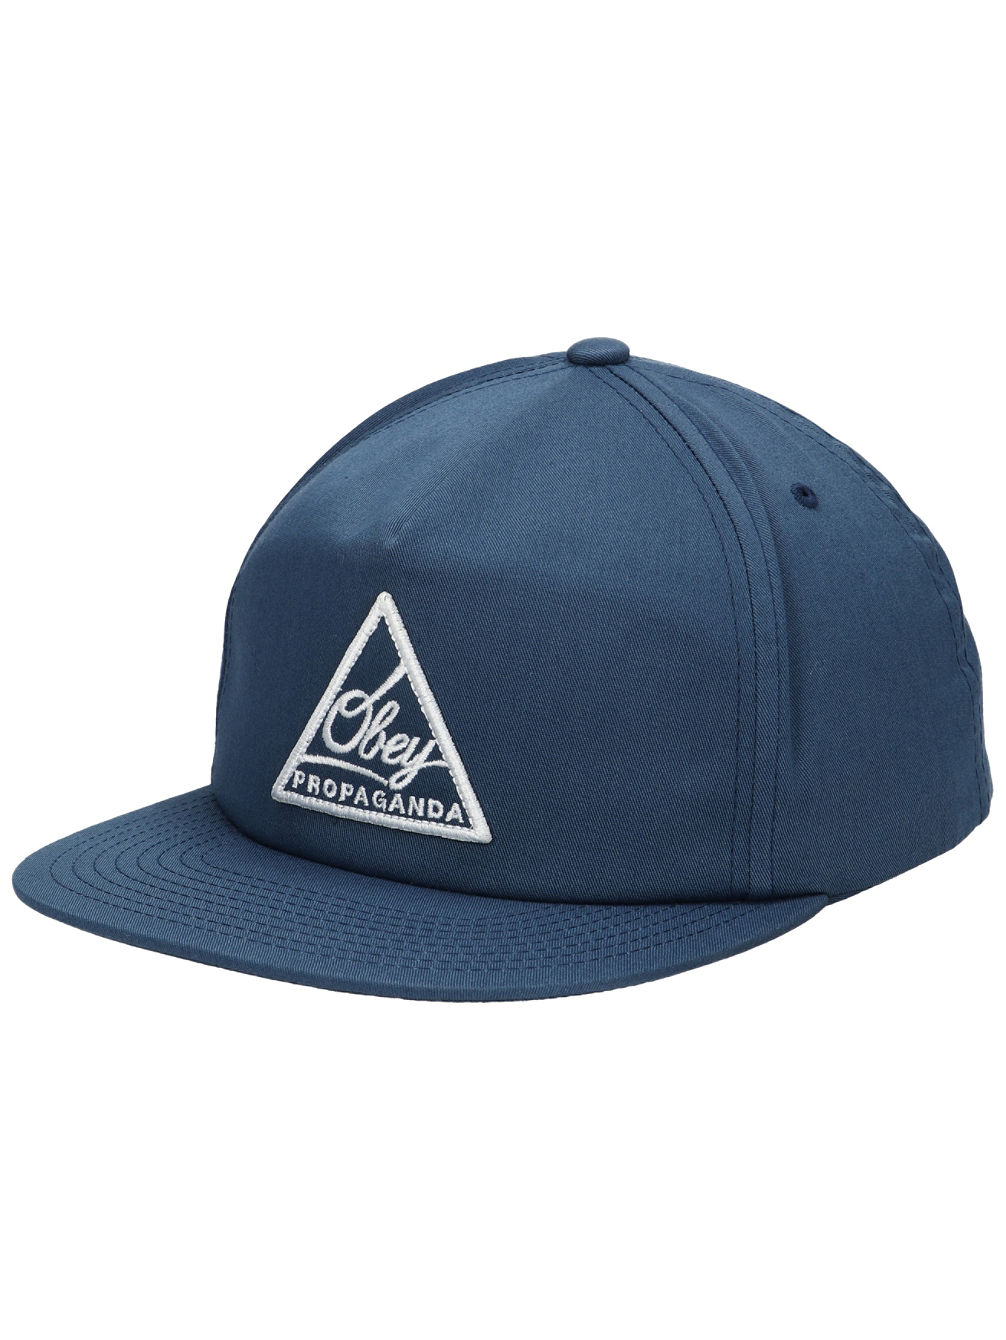 New Federation II Snapback Cap